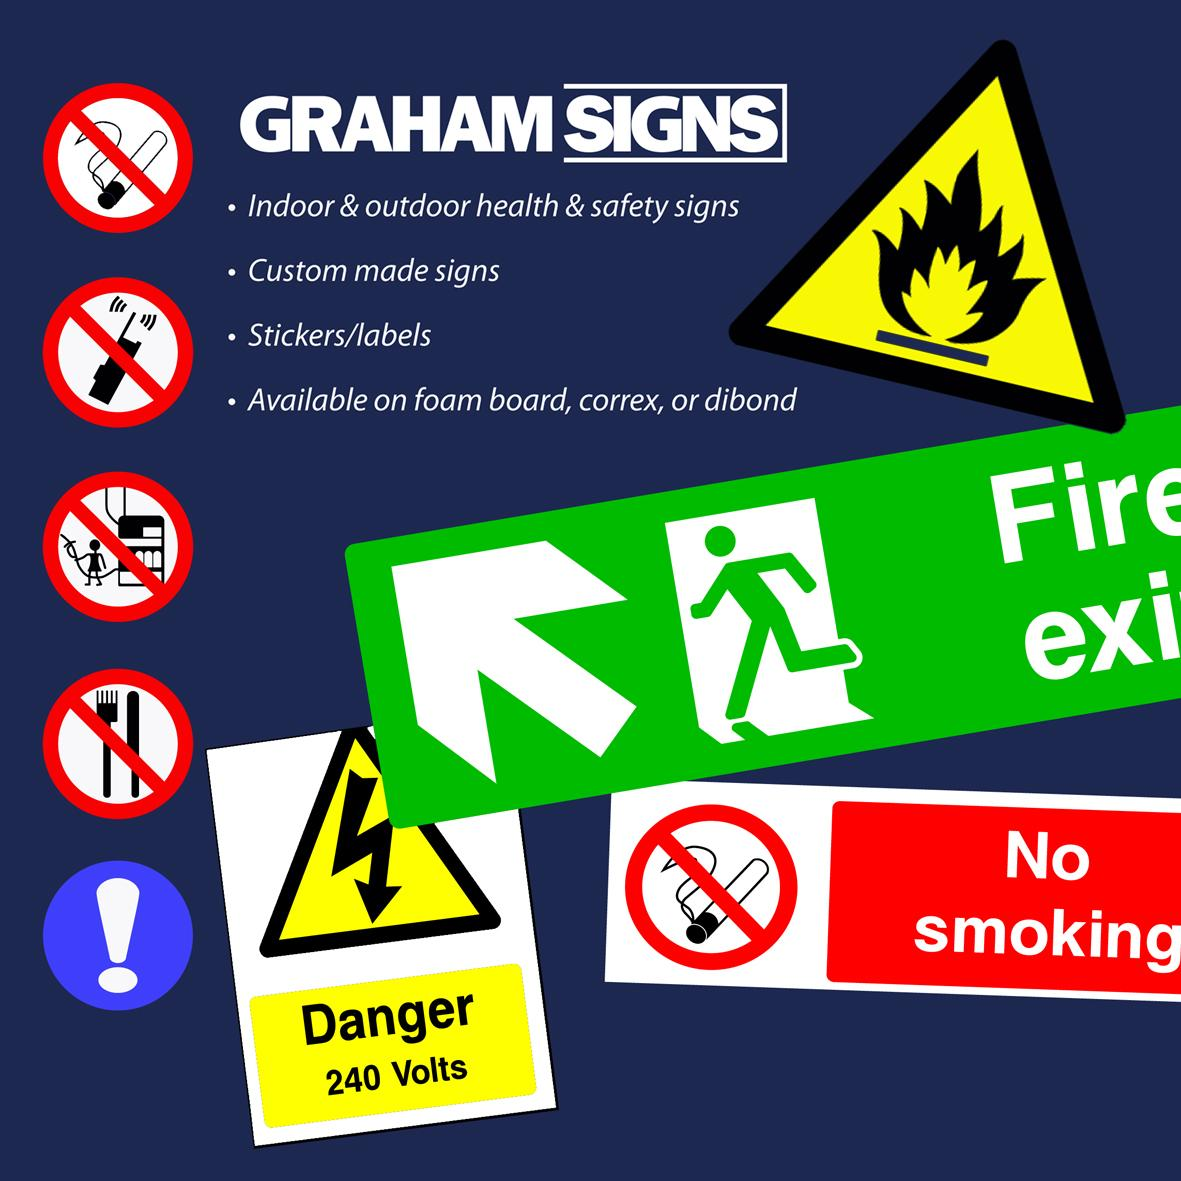 Health And Safety Signs In Worcestershire Herefordshire